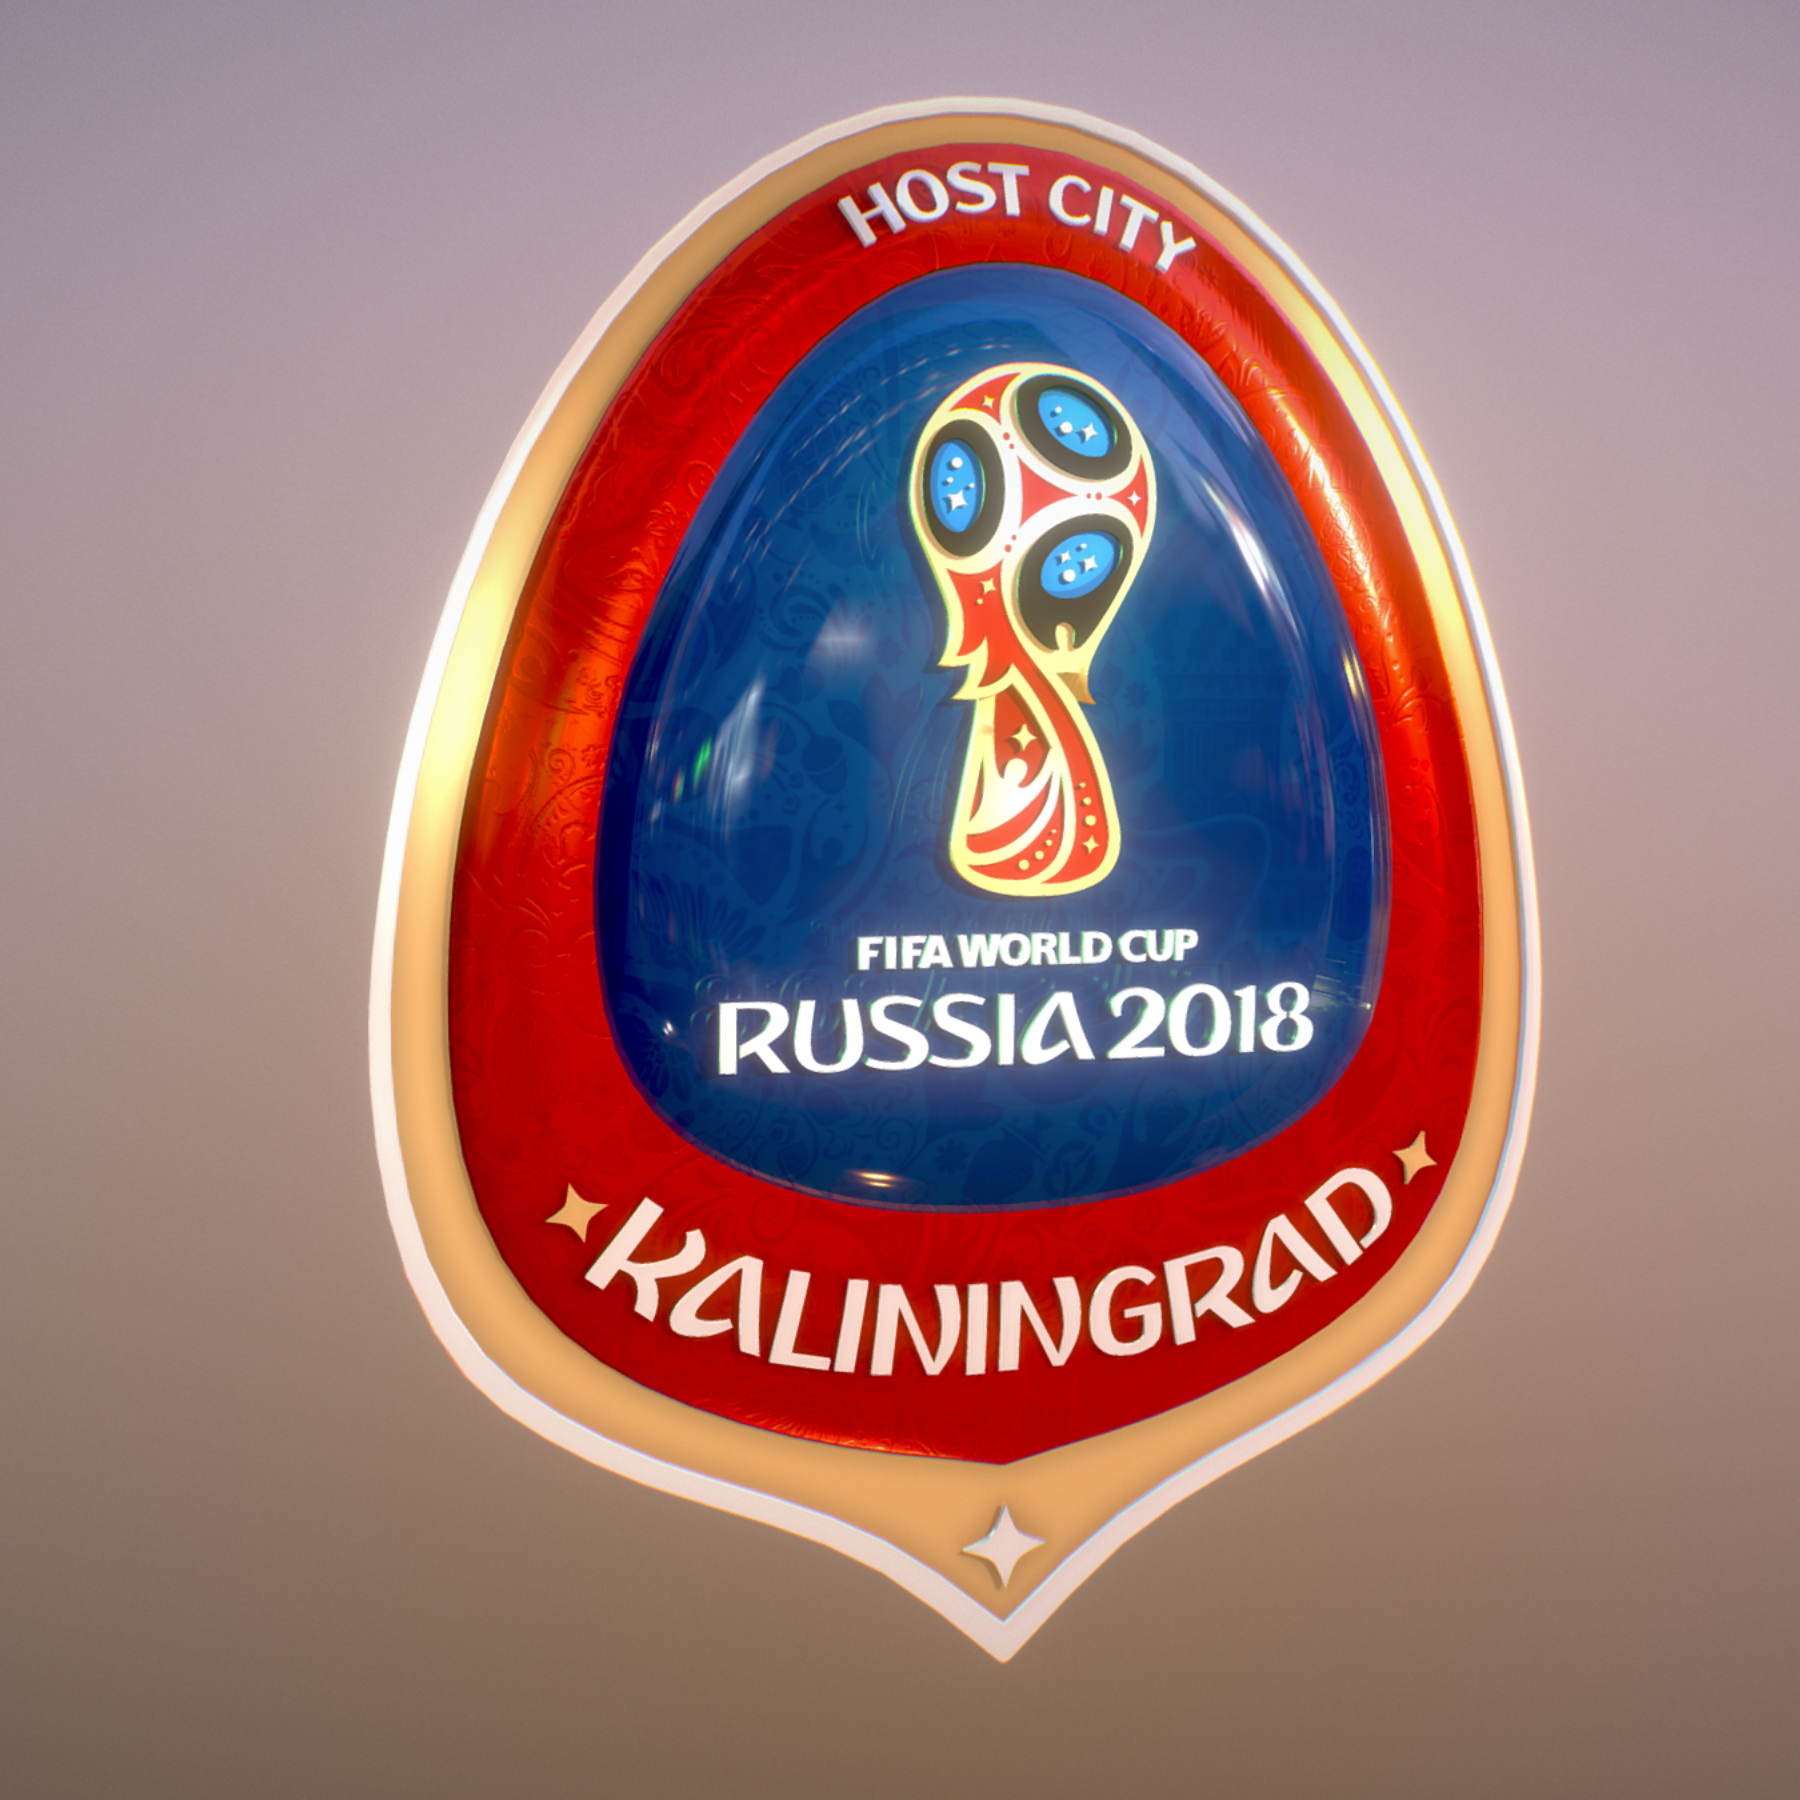 kaliningrad city world cup Rusija 2018 simbol 3d model max fbx jpeg jpg ma mb obj 271762